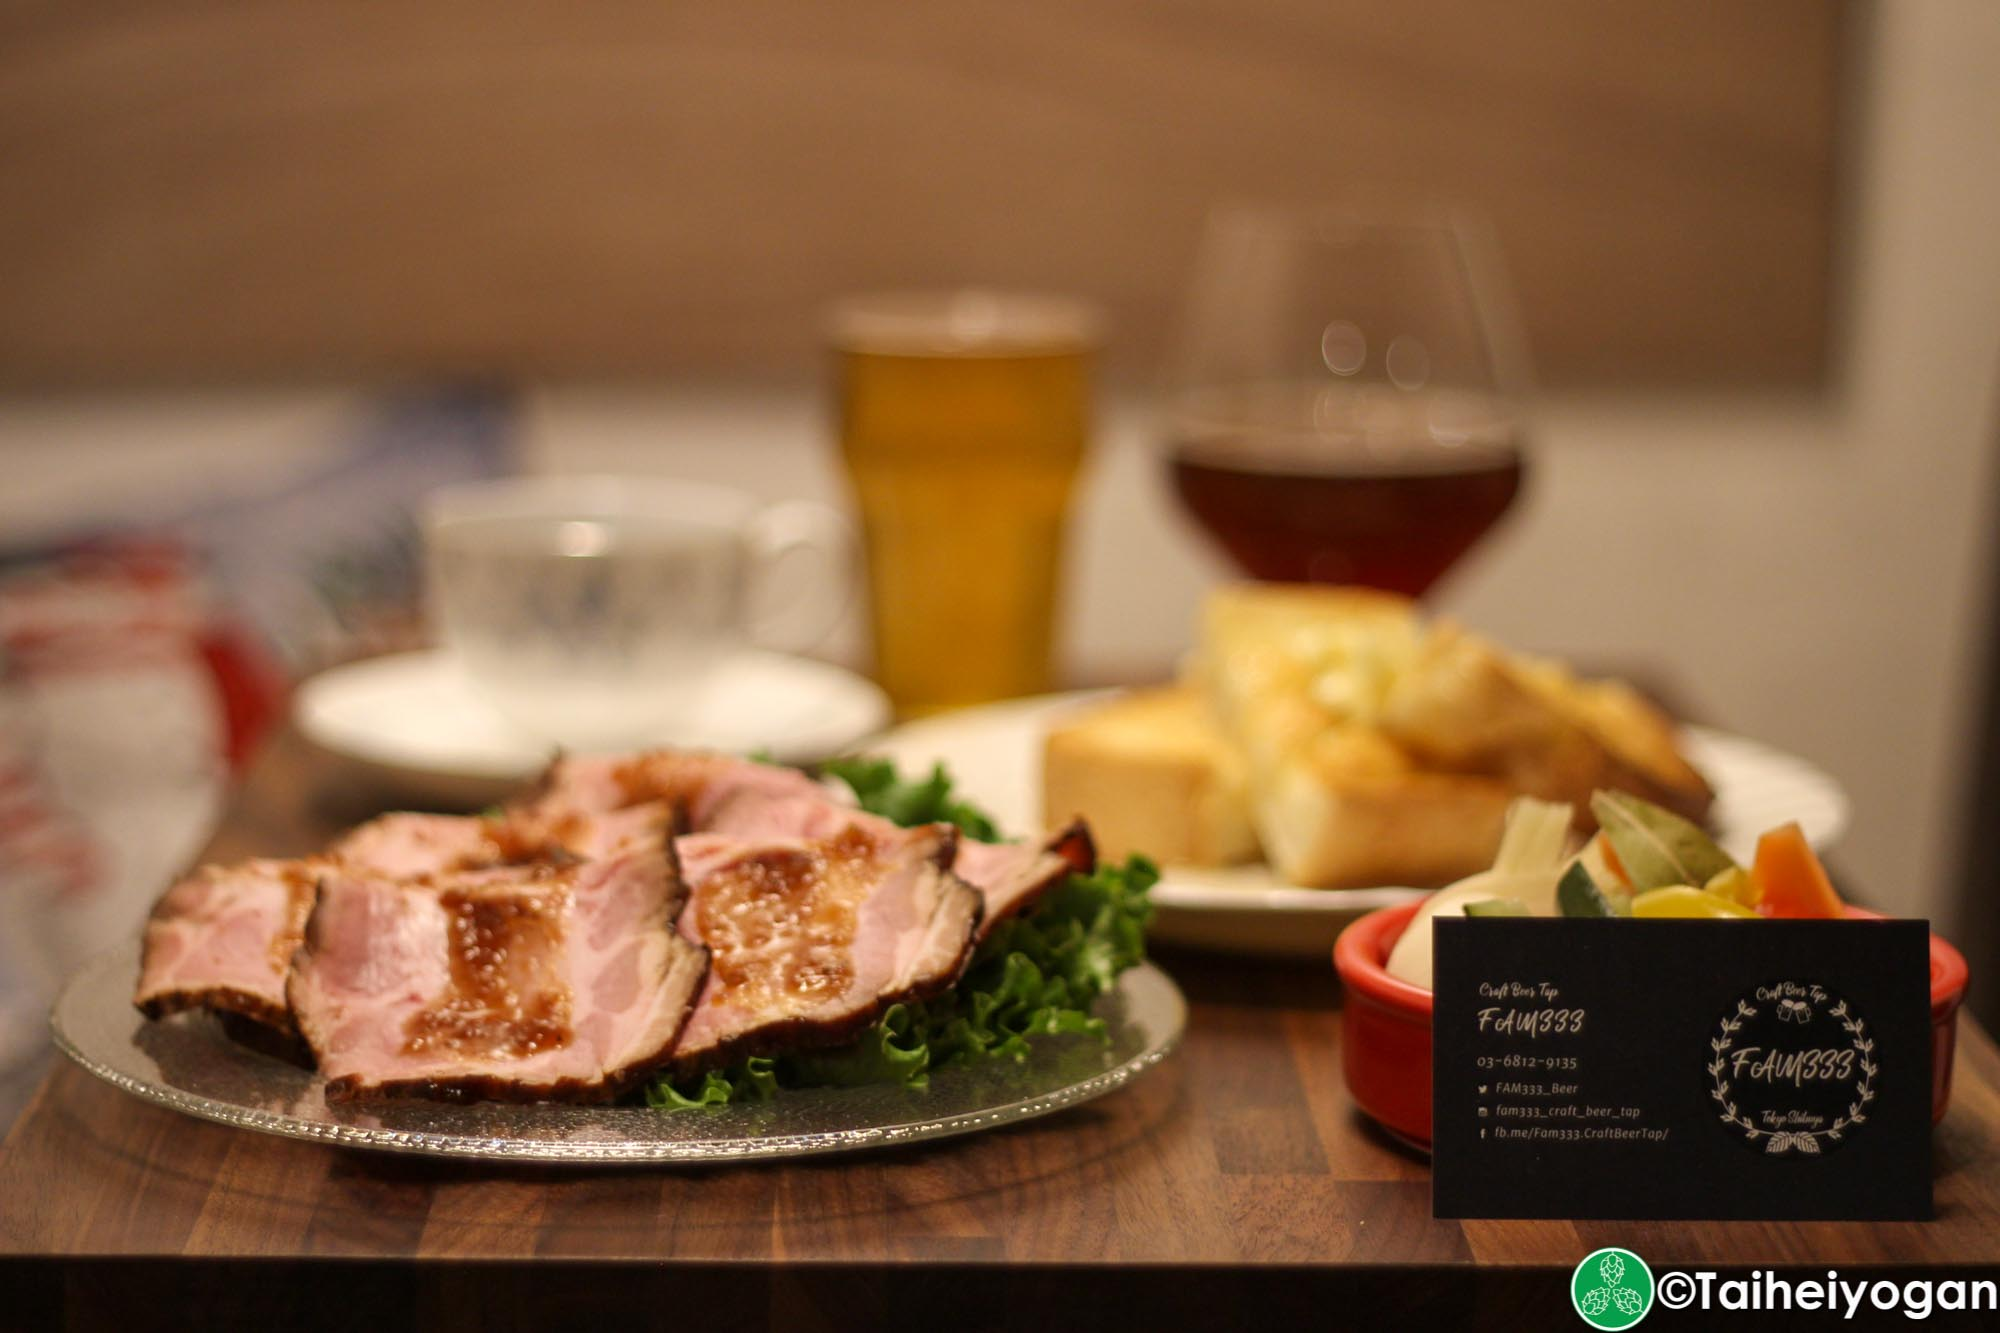 FAM333 - Interior - Lunch Menu - Roast Pork, Pickles, Honey Toast, Coffee & Craft Beer